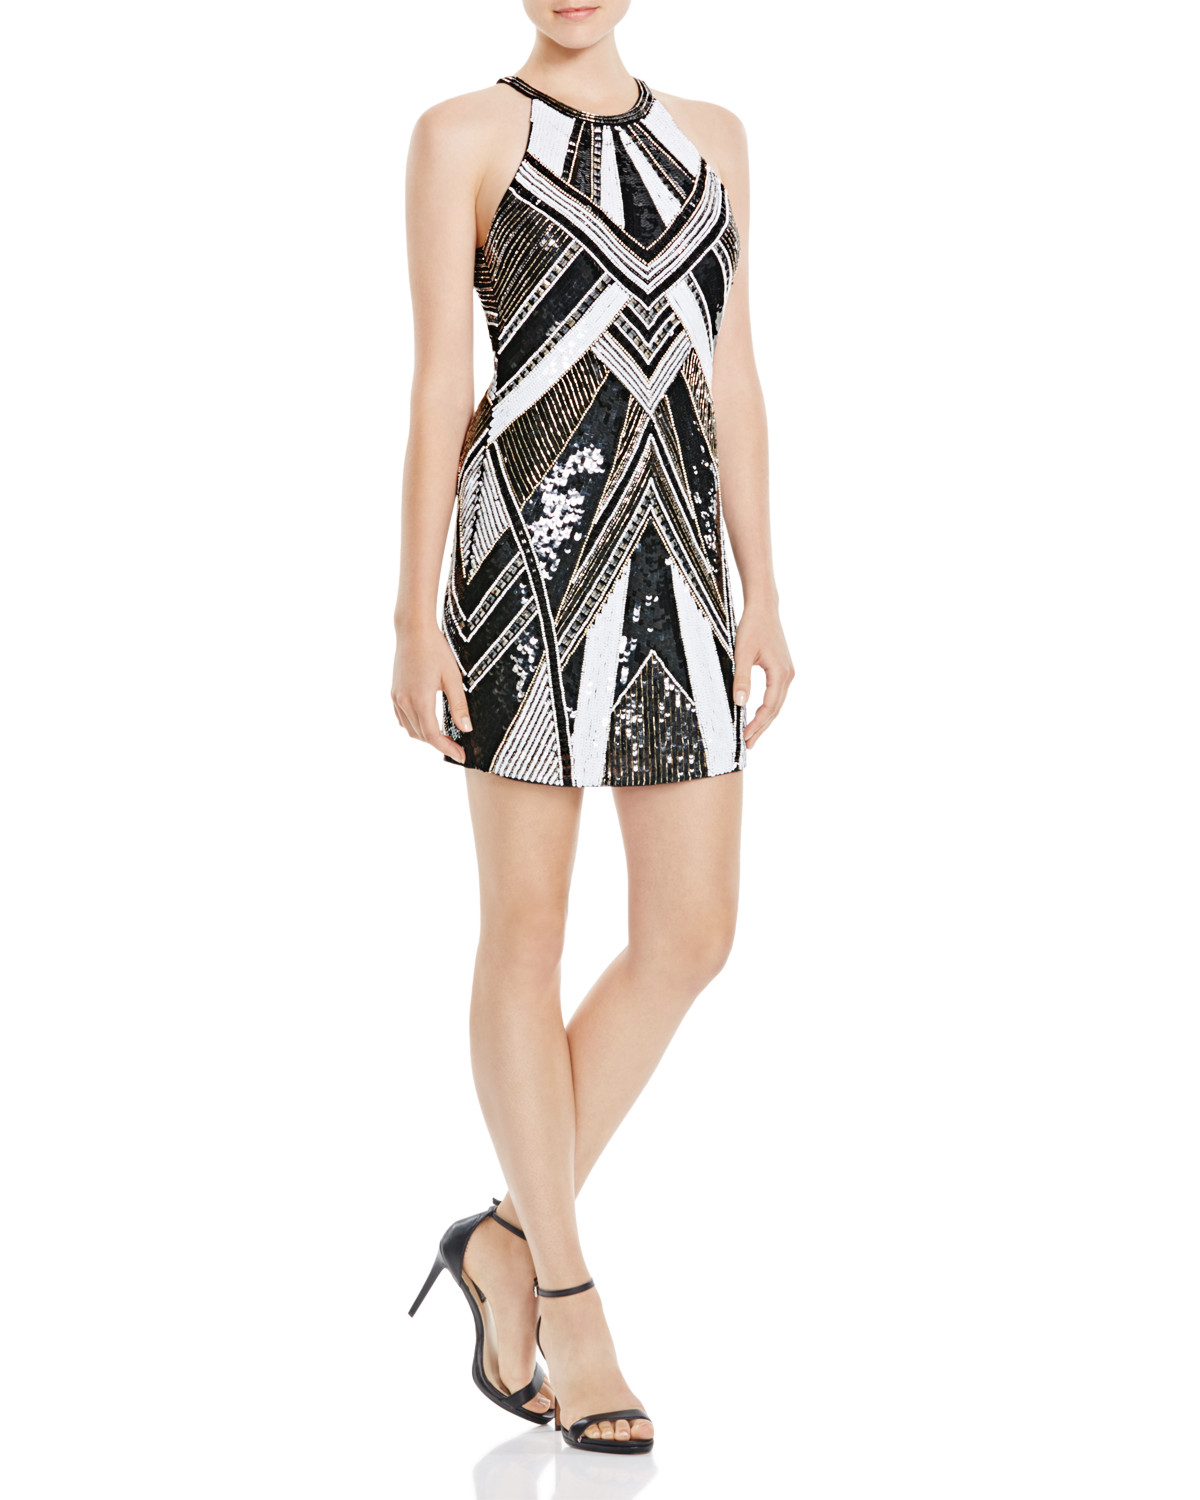 Parker Audrey sequin dress, Available exclusively at Bloomingdale's and bloomingdales.com image: bloomingdale's and bloomingdales.com